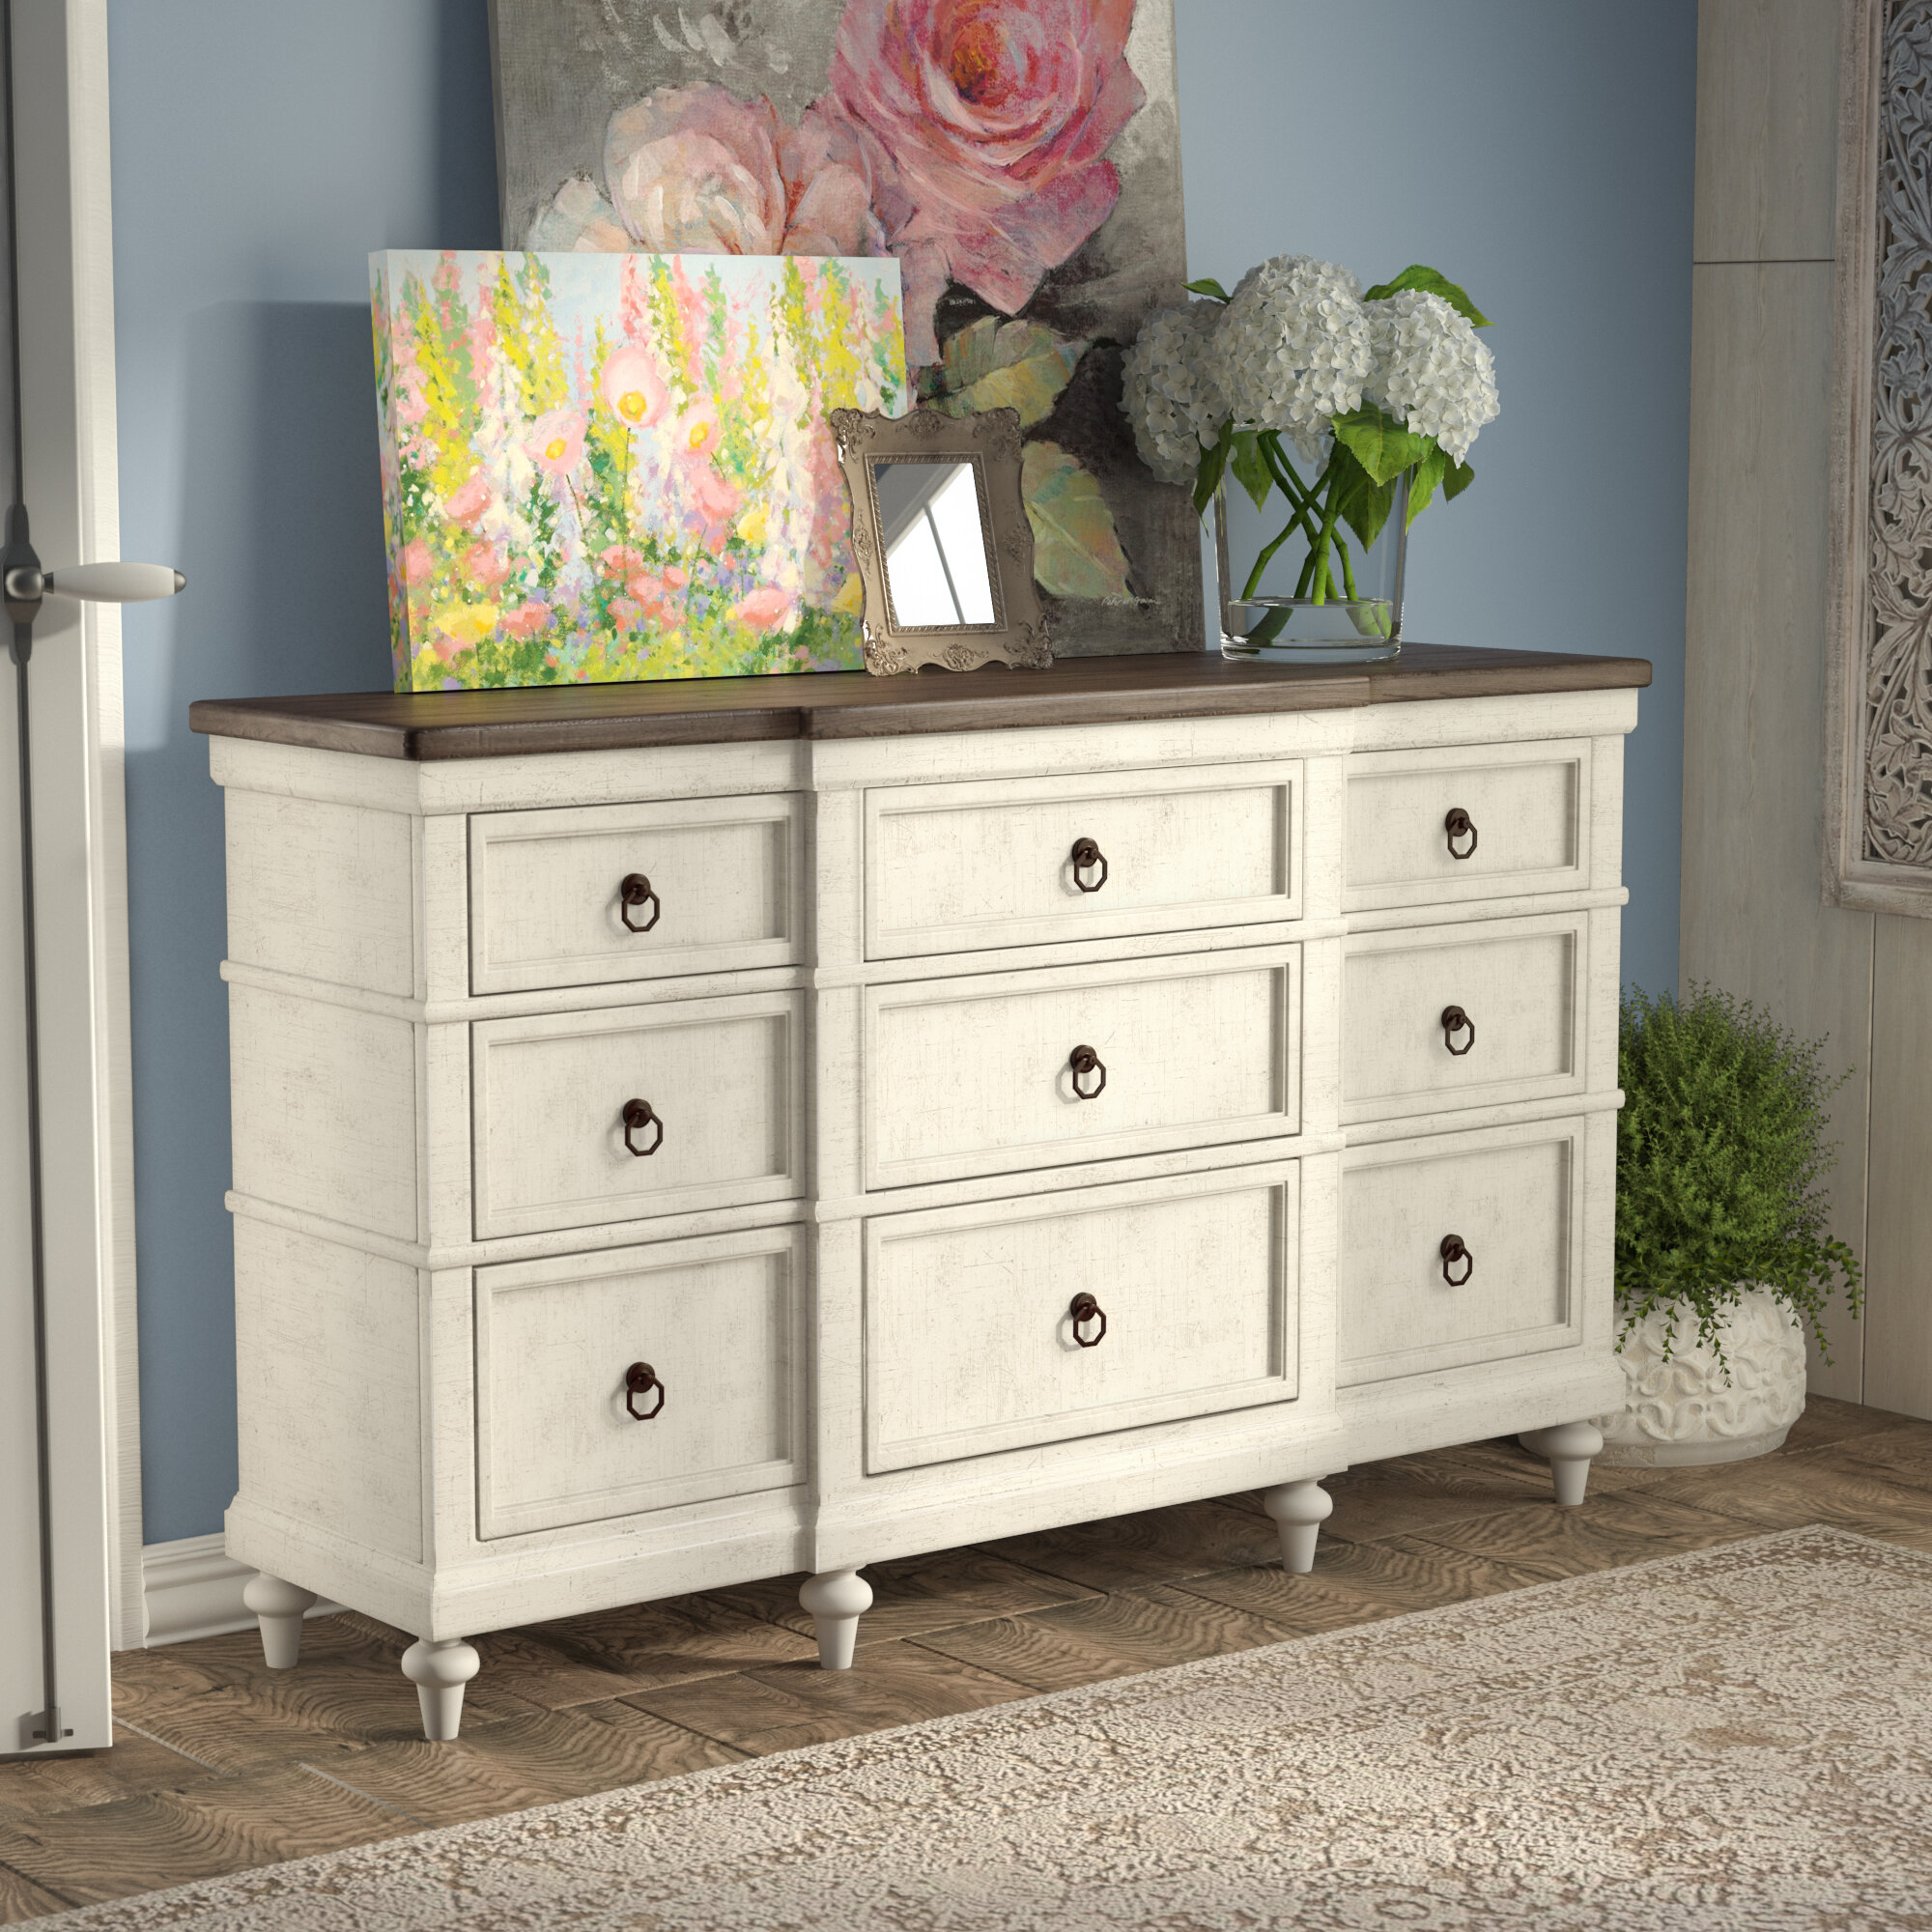 furniture street drawer dresser langley reviews pdp allmodern sunset chest